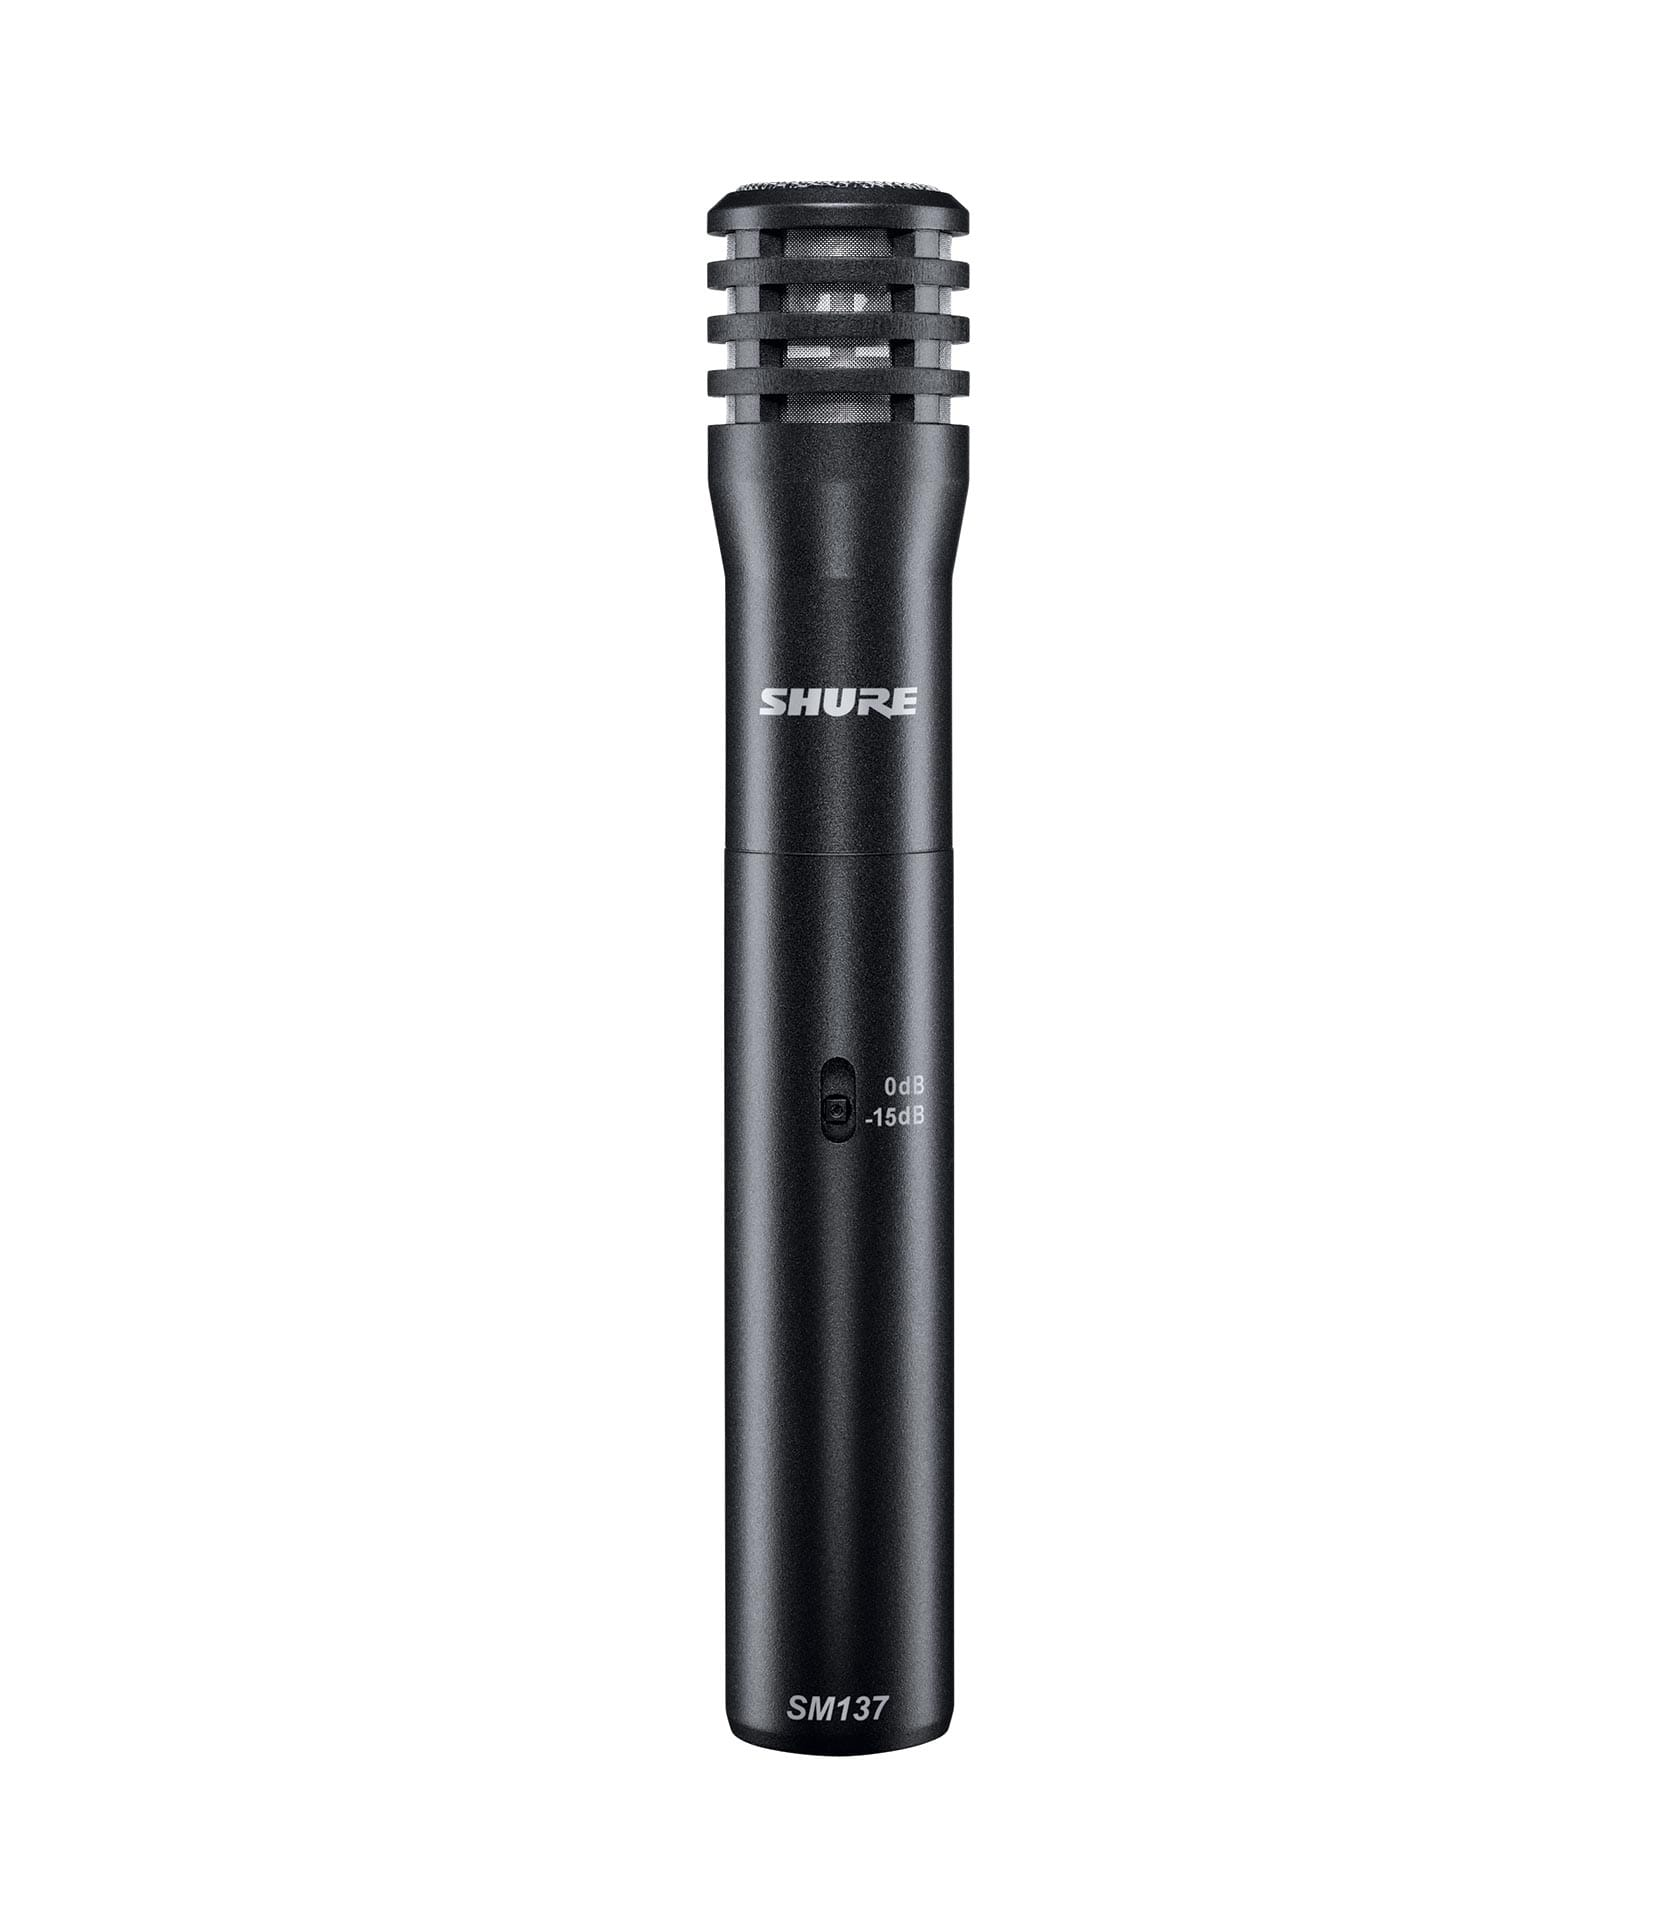 Shure - SM137LCX Cardioid Condenser FlatResponse Instr Mic - Melody House Musical Instruments